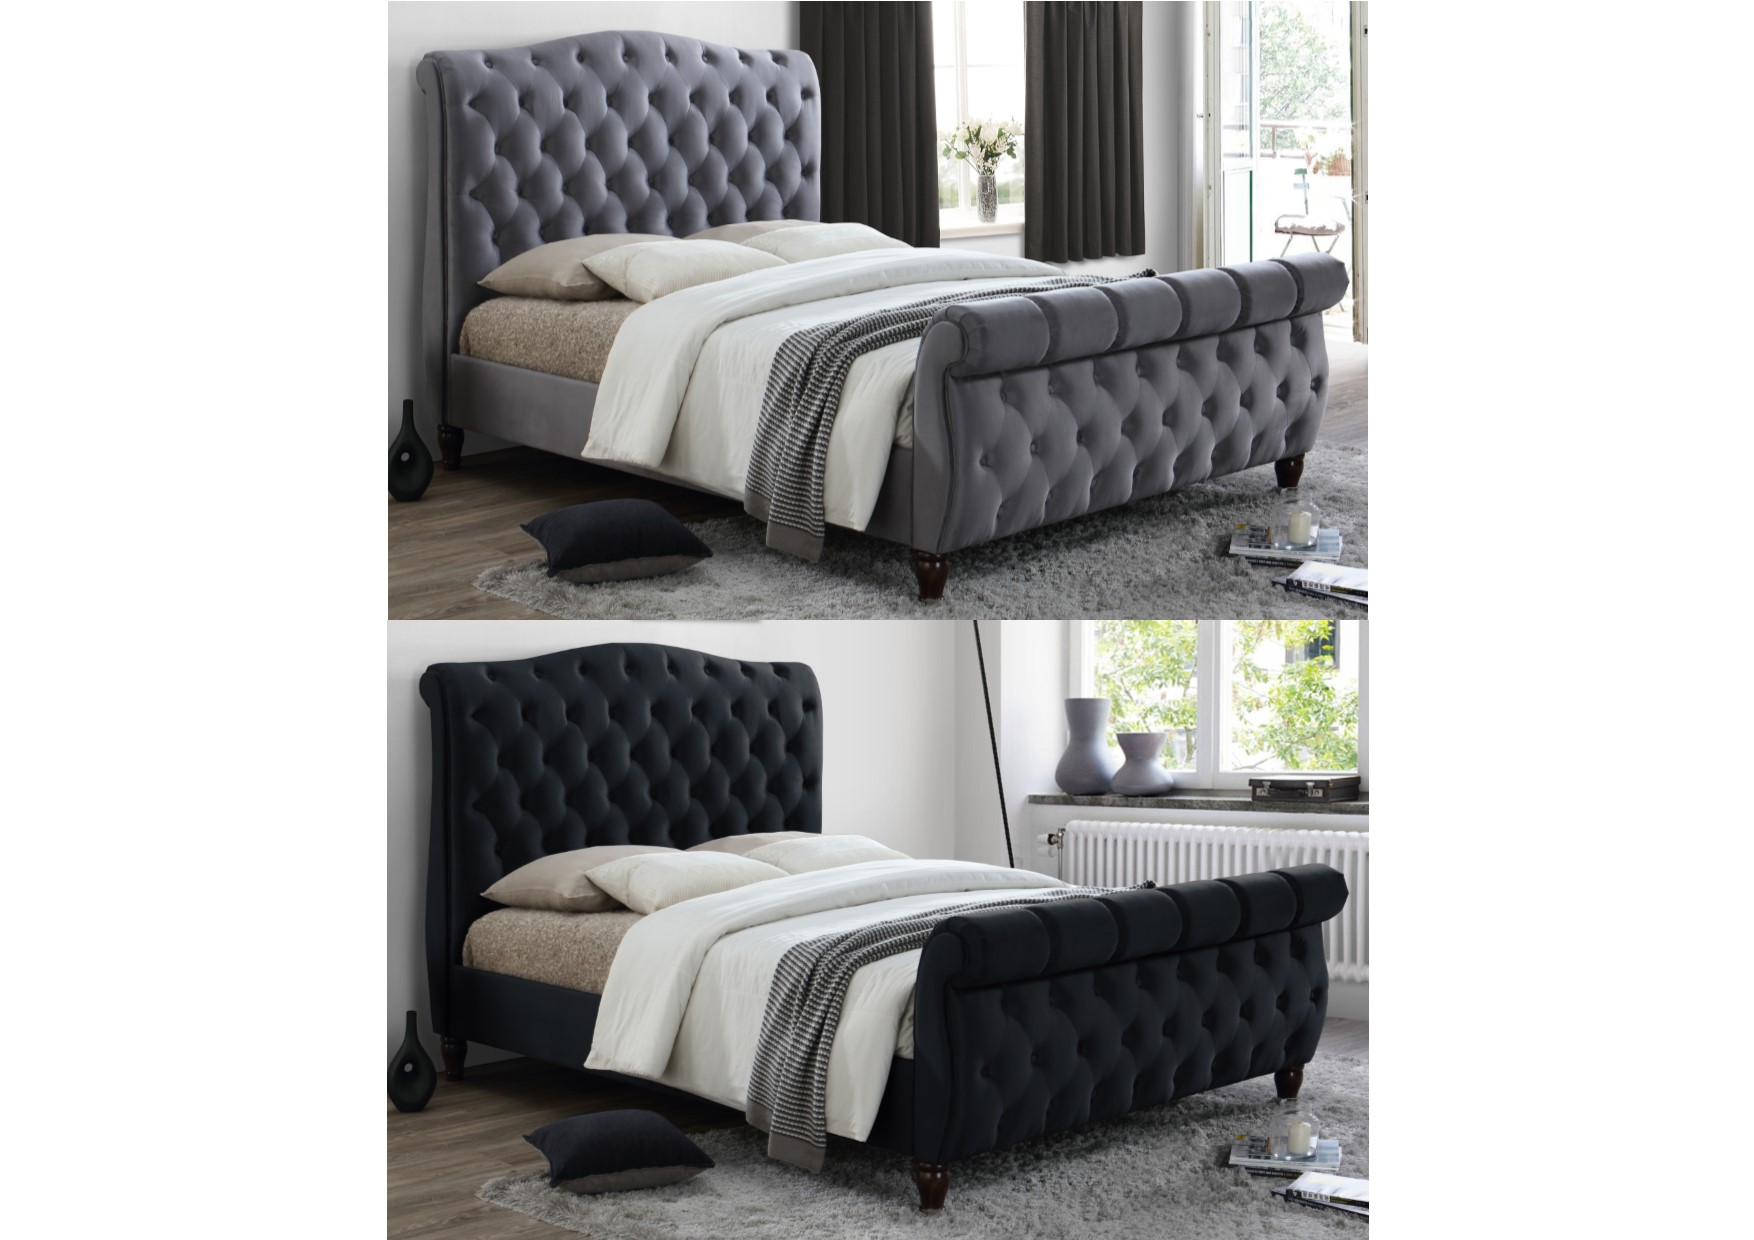 Details About Birlea Colorado Chesterfield Fabric Sleigh Bed   Kingsize  Super King Black Grey